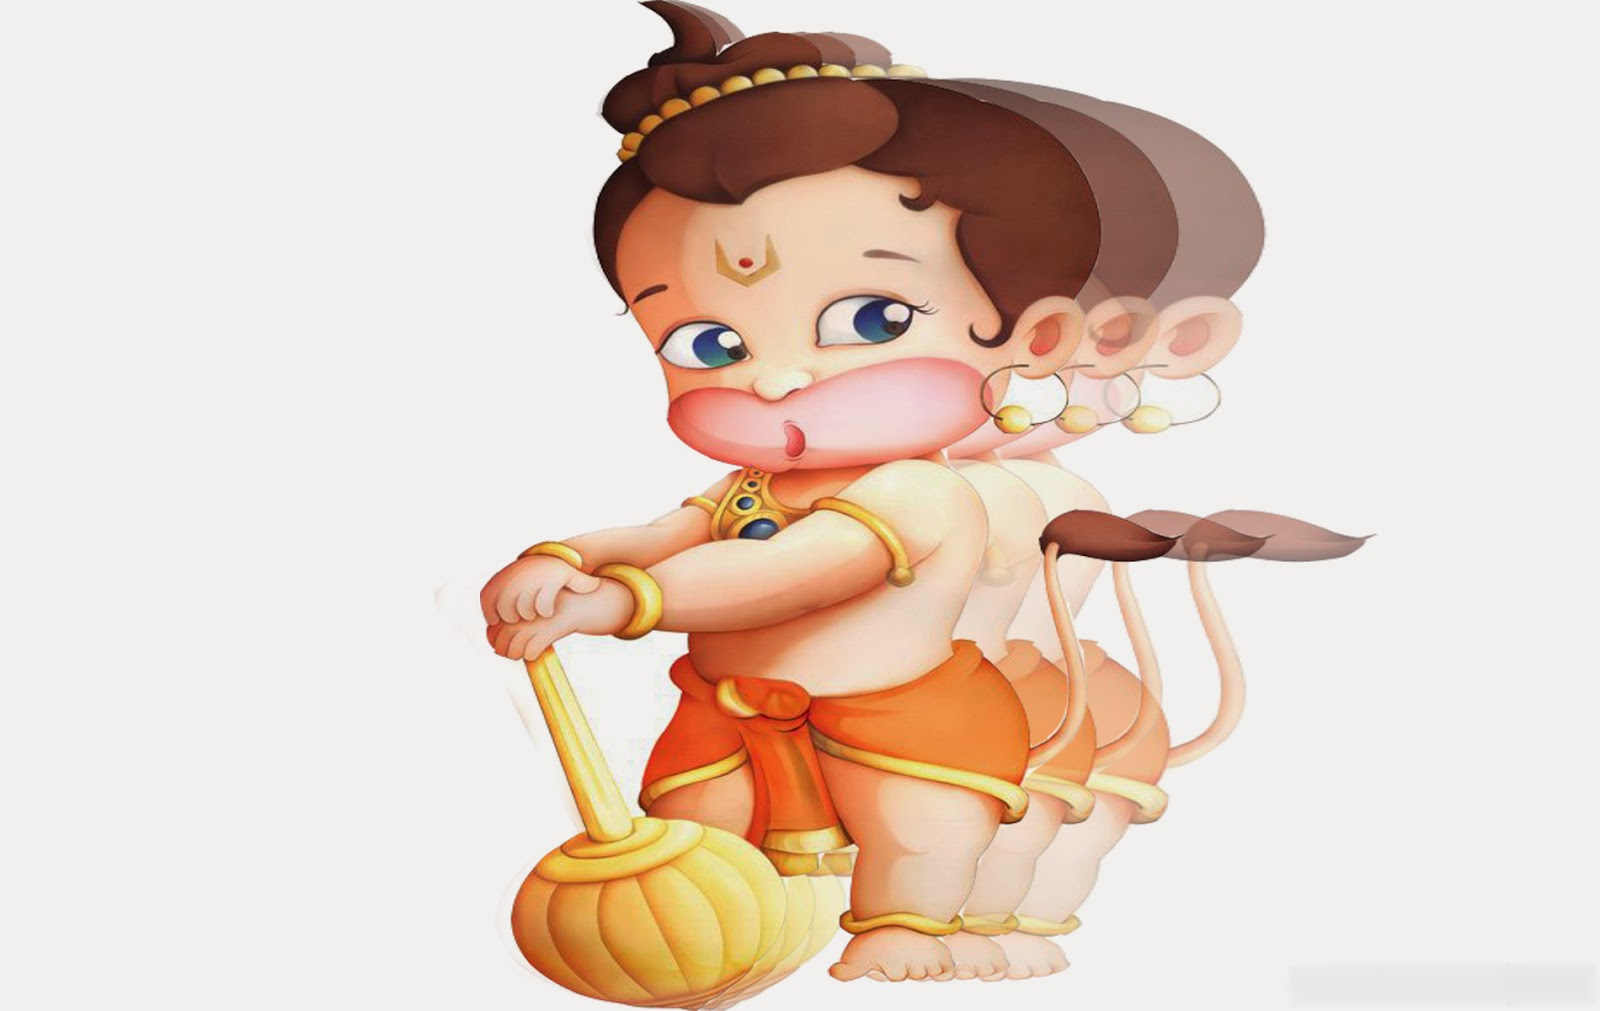 jay bal hanuman ji wallpapers for desktop background